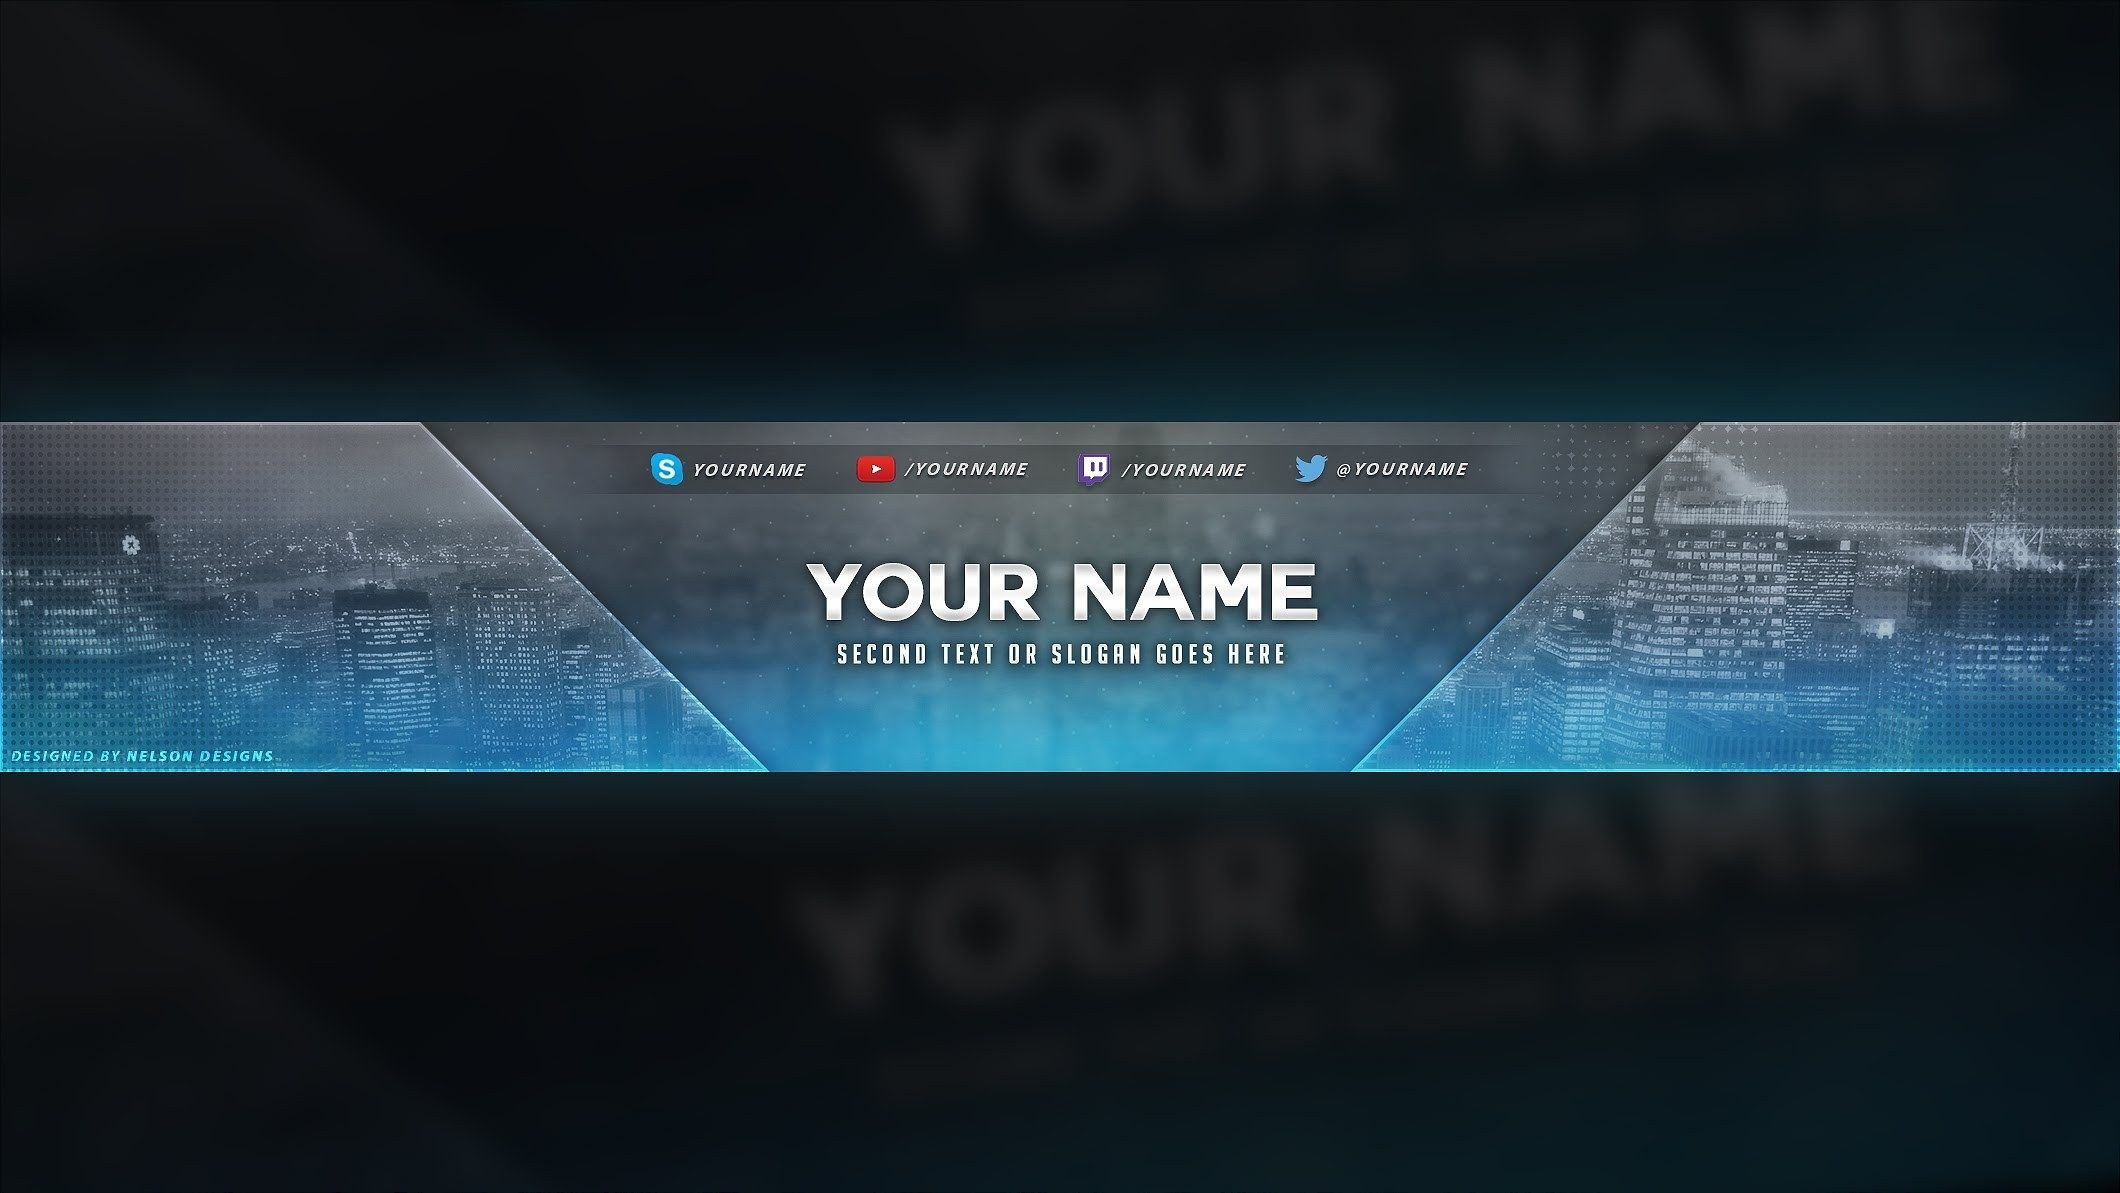 4 Free Youtube Banner Psd Template Designs Social Media Youtube Banner Template Banner Template Banner Template Photoshop